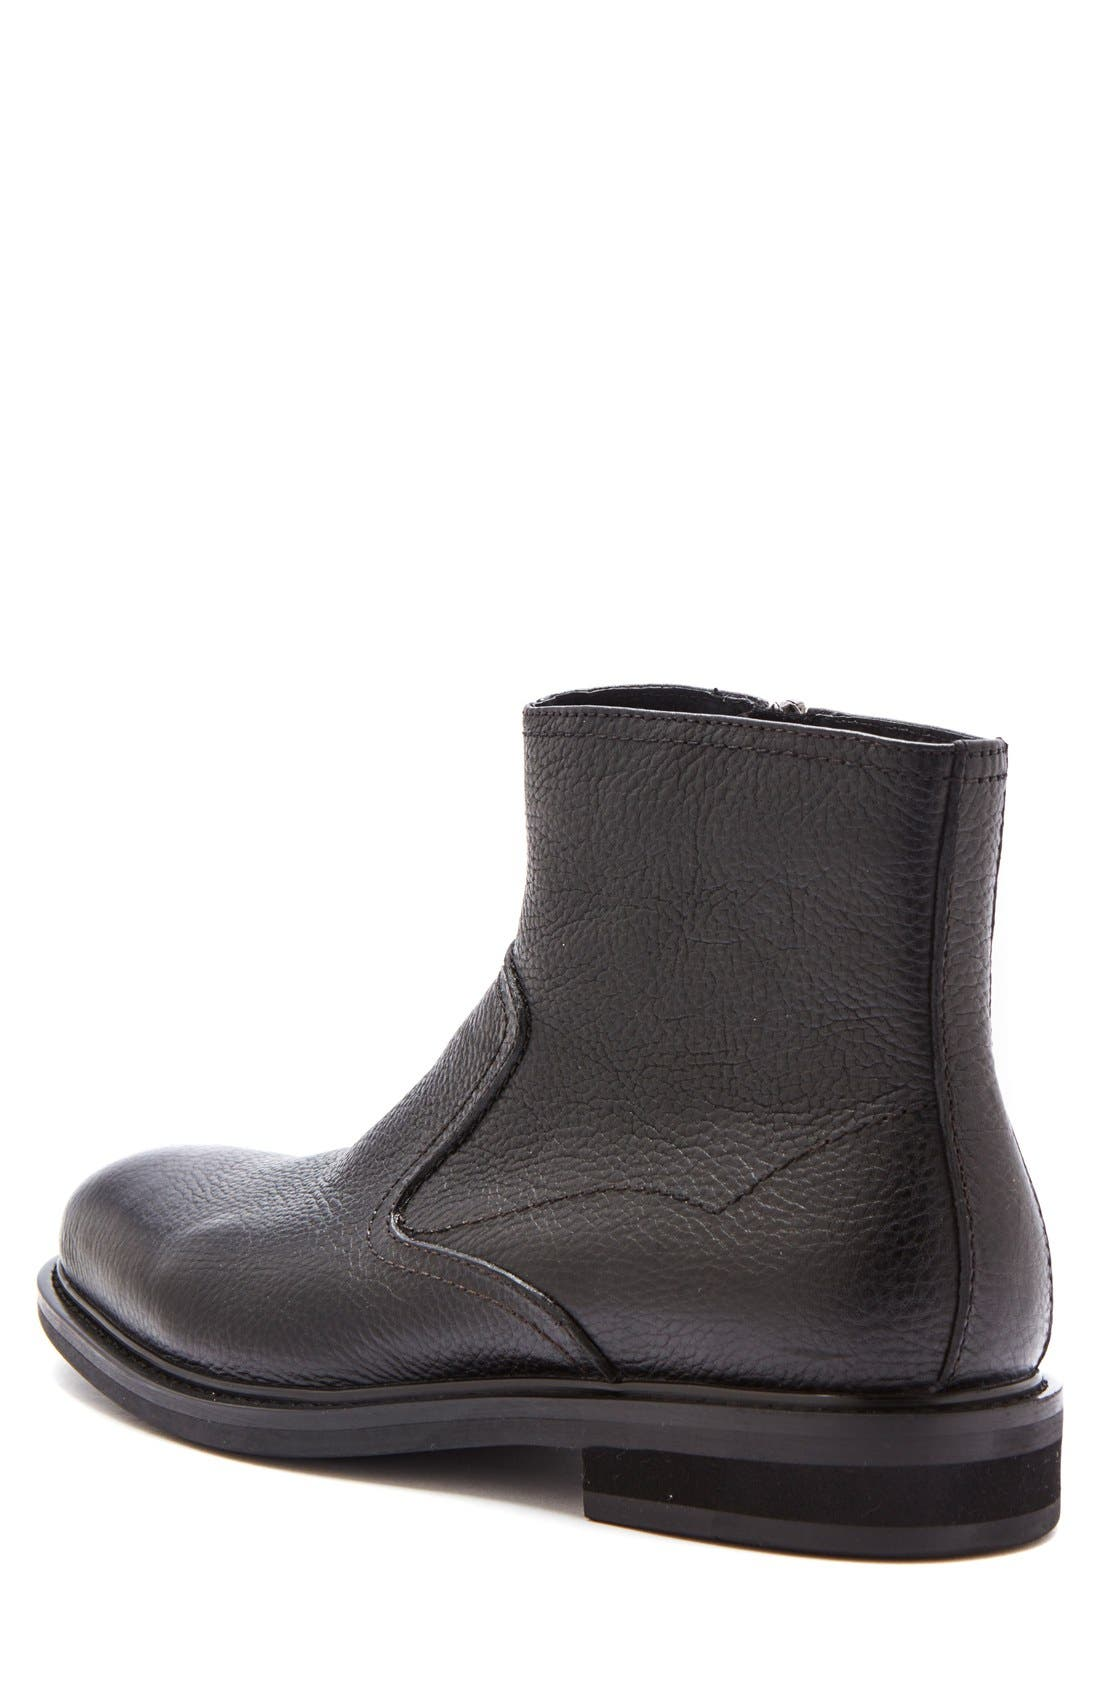 'Fried' Waterproof Zip Boot,                             Alternate thumbnail 2, color,                             Black Leather